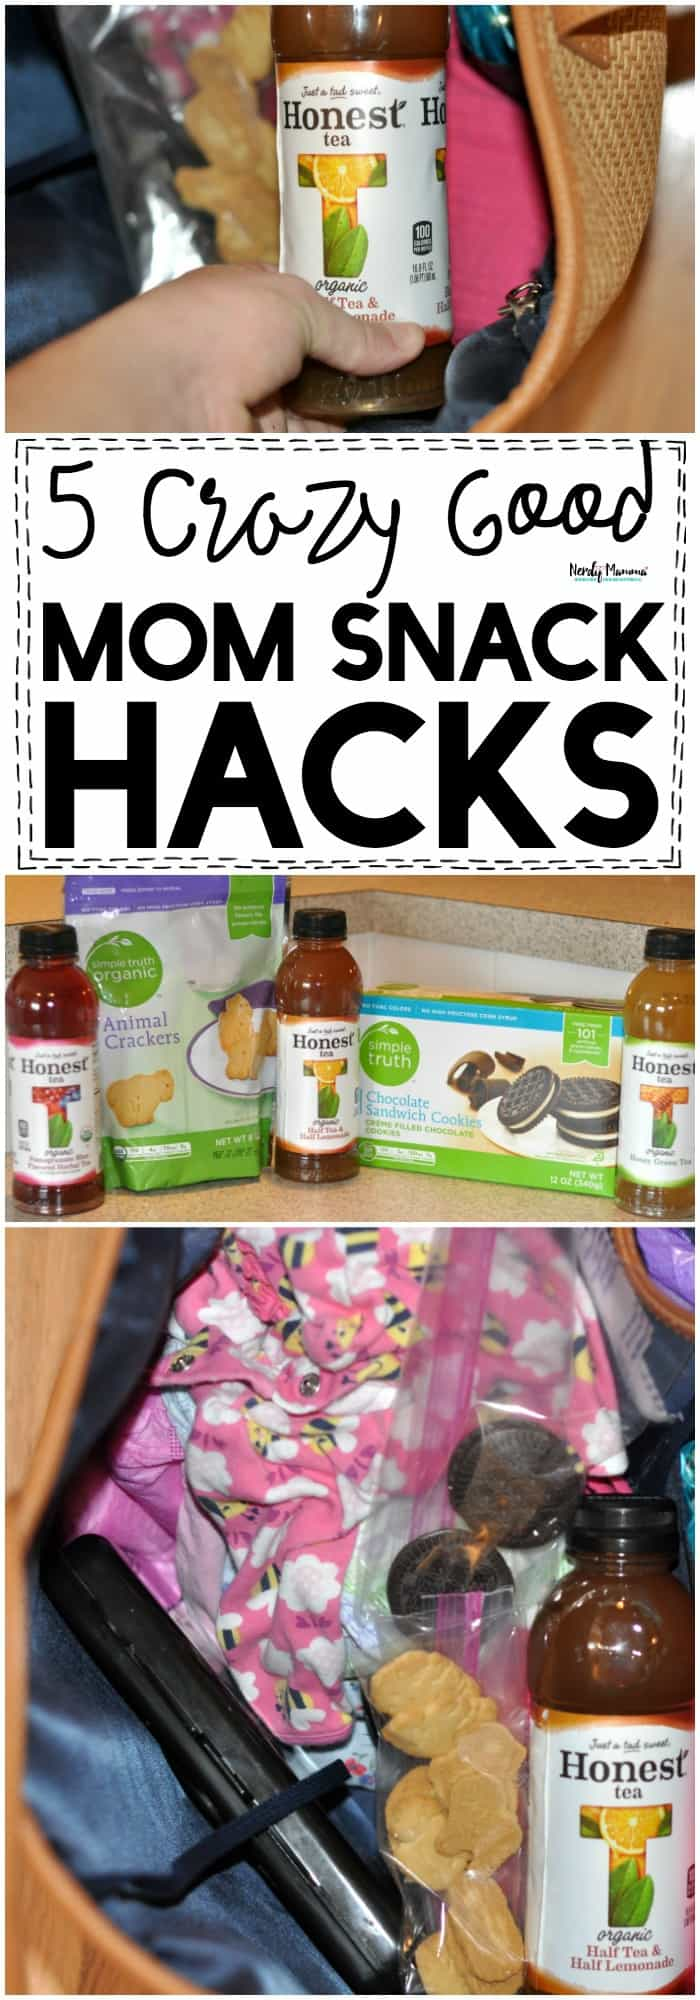 You've GOT to check out these 5 crazy good mom snack hacks!